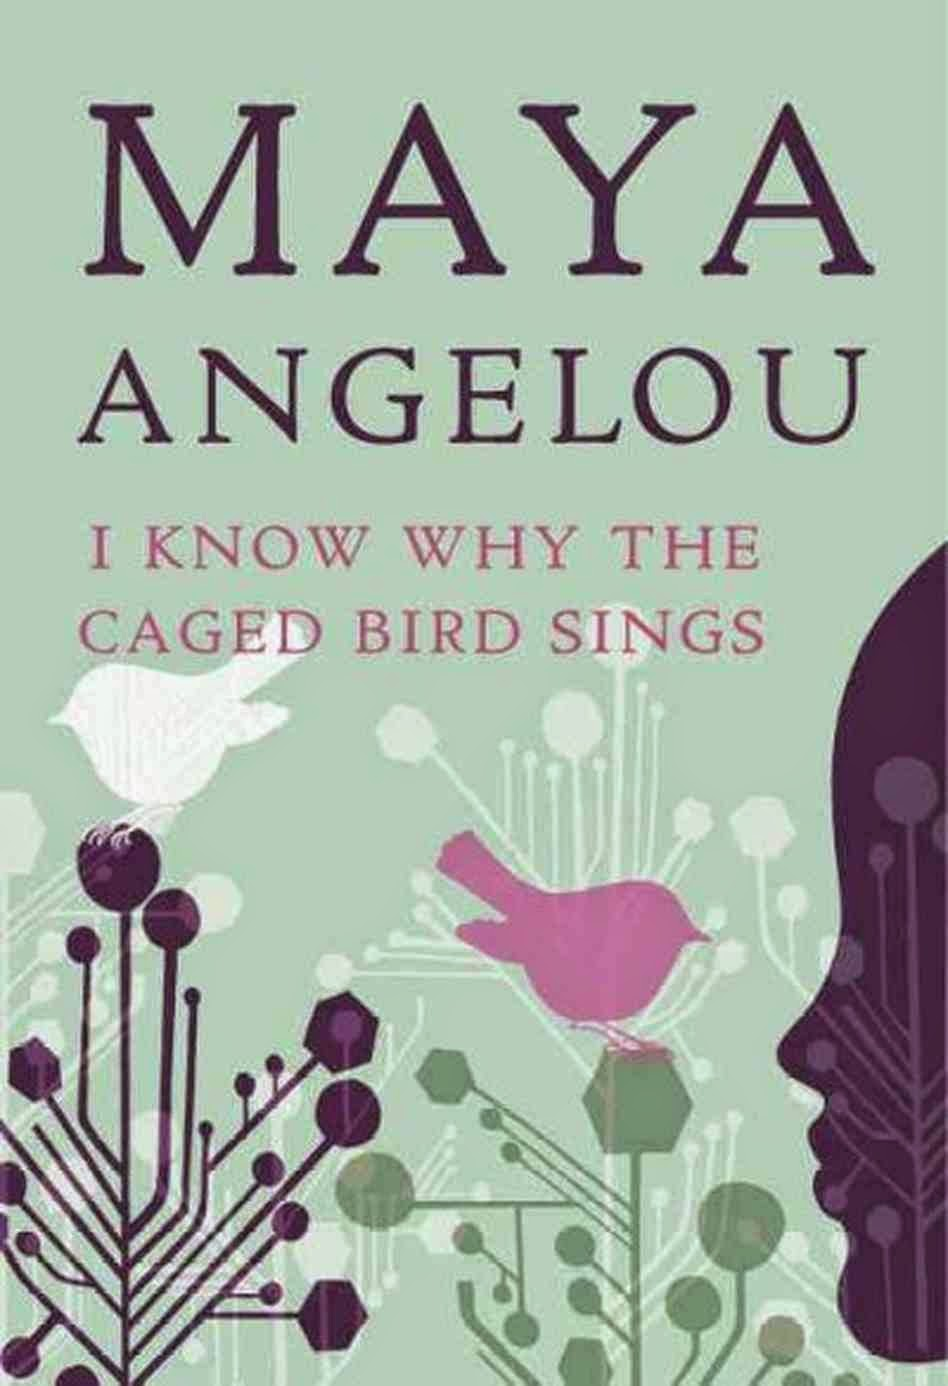 http://www.amazon.com/Know-Why-Caged-Bird-Sings-ebook/dp/B0026LTNFO/ref=sr_1_1?s=digital-text&ie=UTF8&qid=1412356109&sr=1-1&keywords=i+know+why+the+caged+bird+sings+kindle